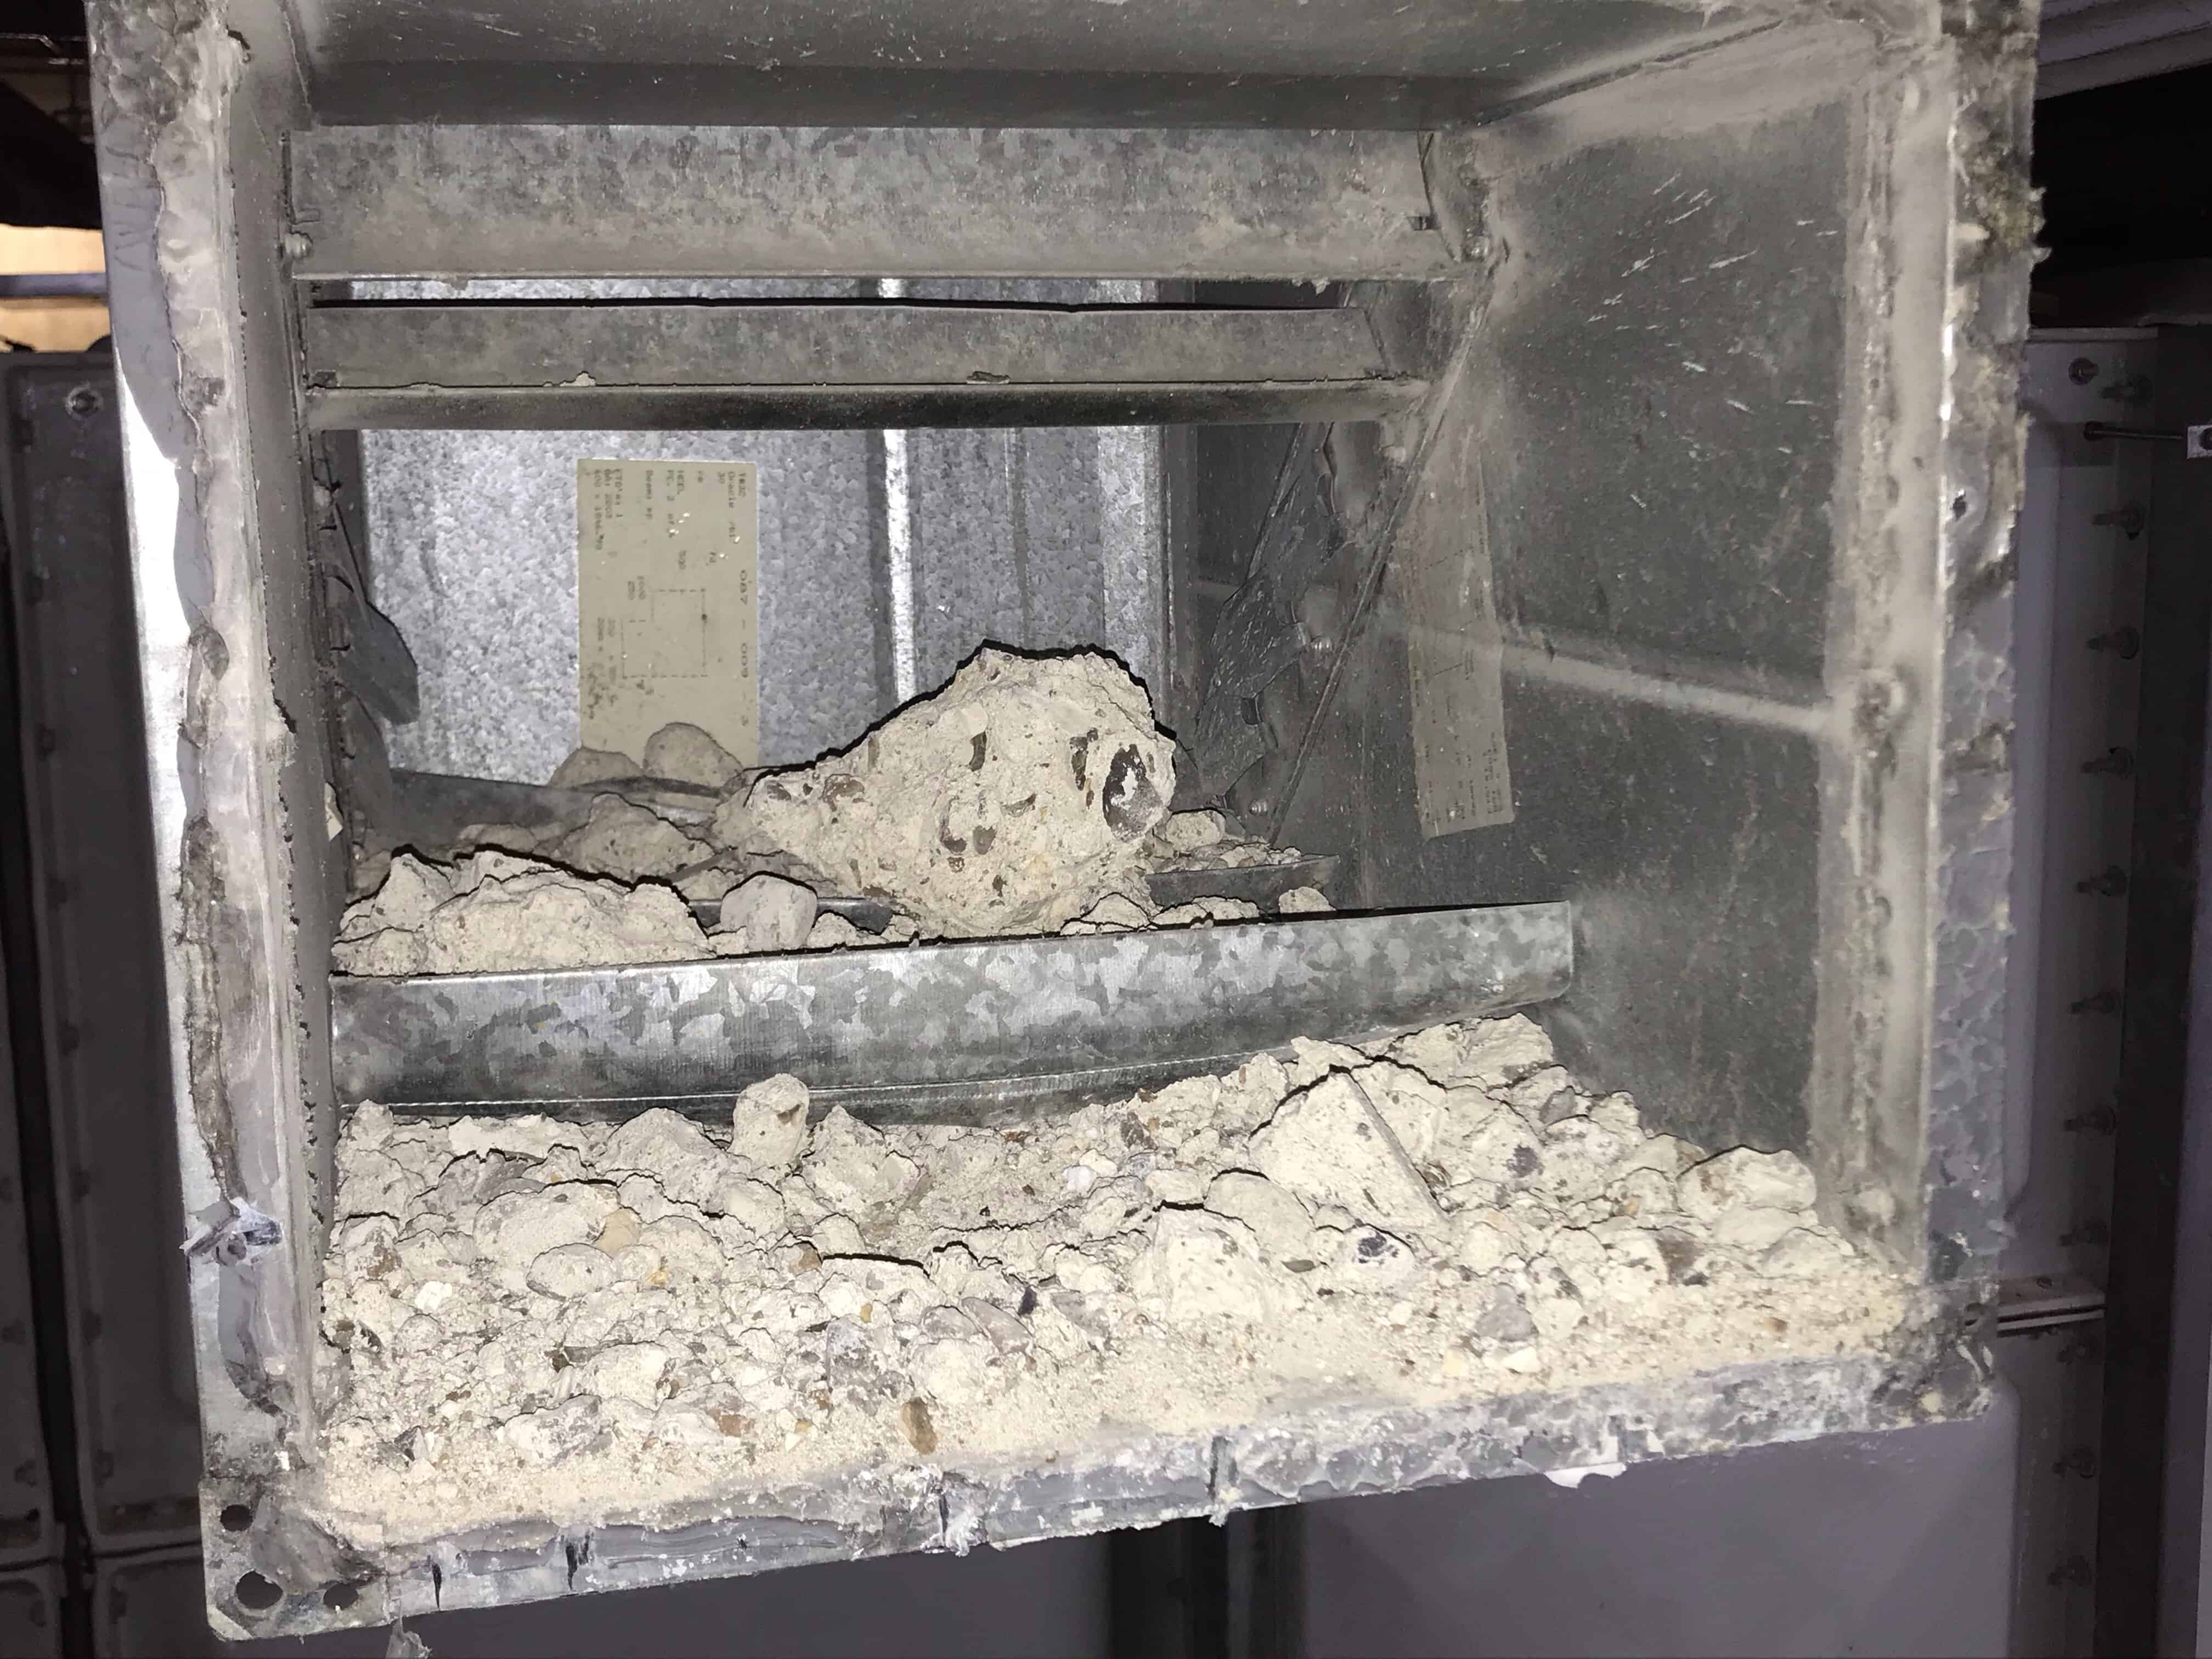 Dirty ductwork